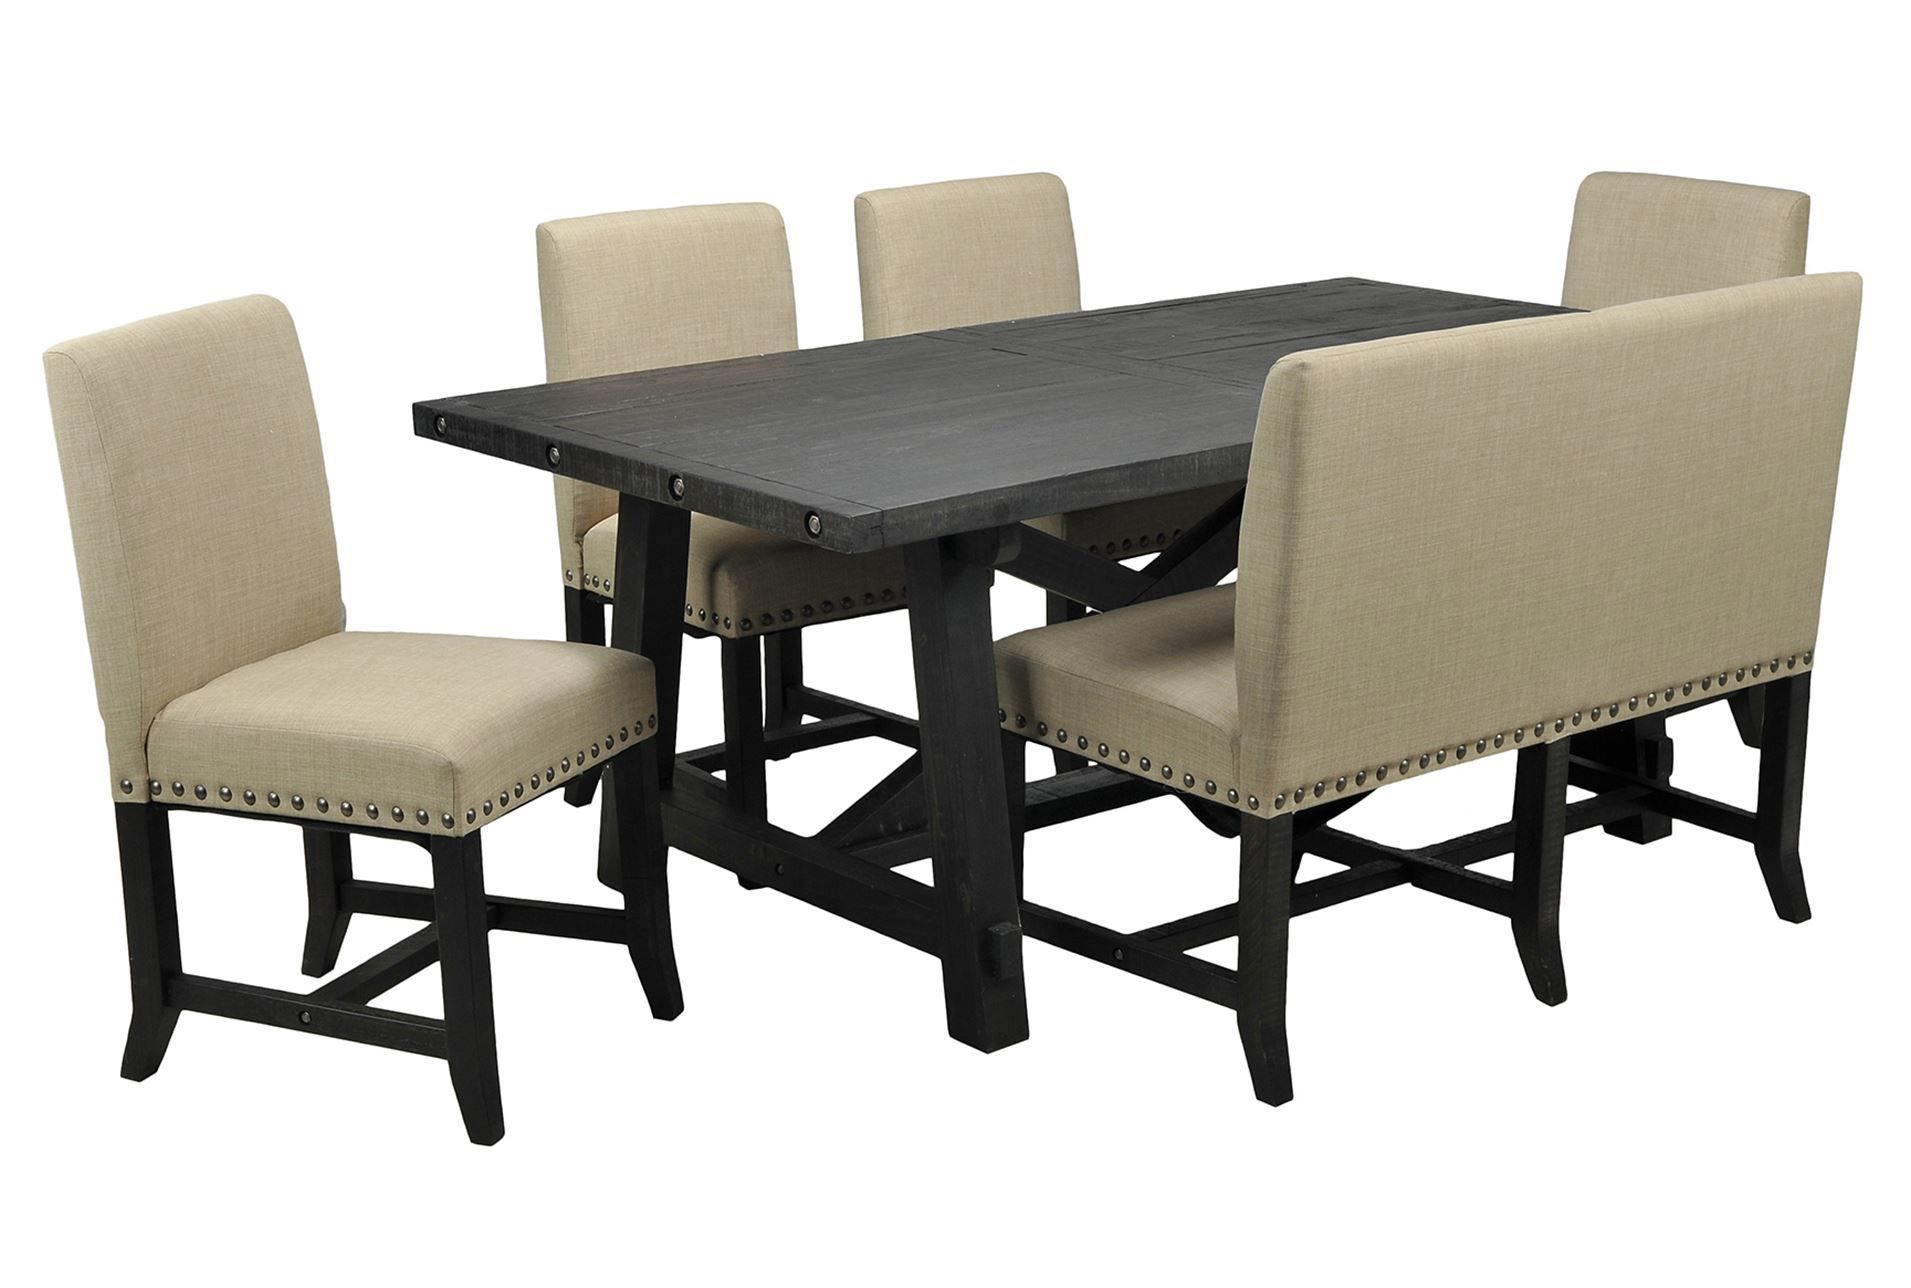 Jaxon 6 Piece Rectangle Dining Set W Bench Uph Chairs Upholstered ChairsDining TableDining